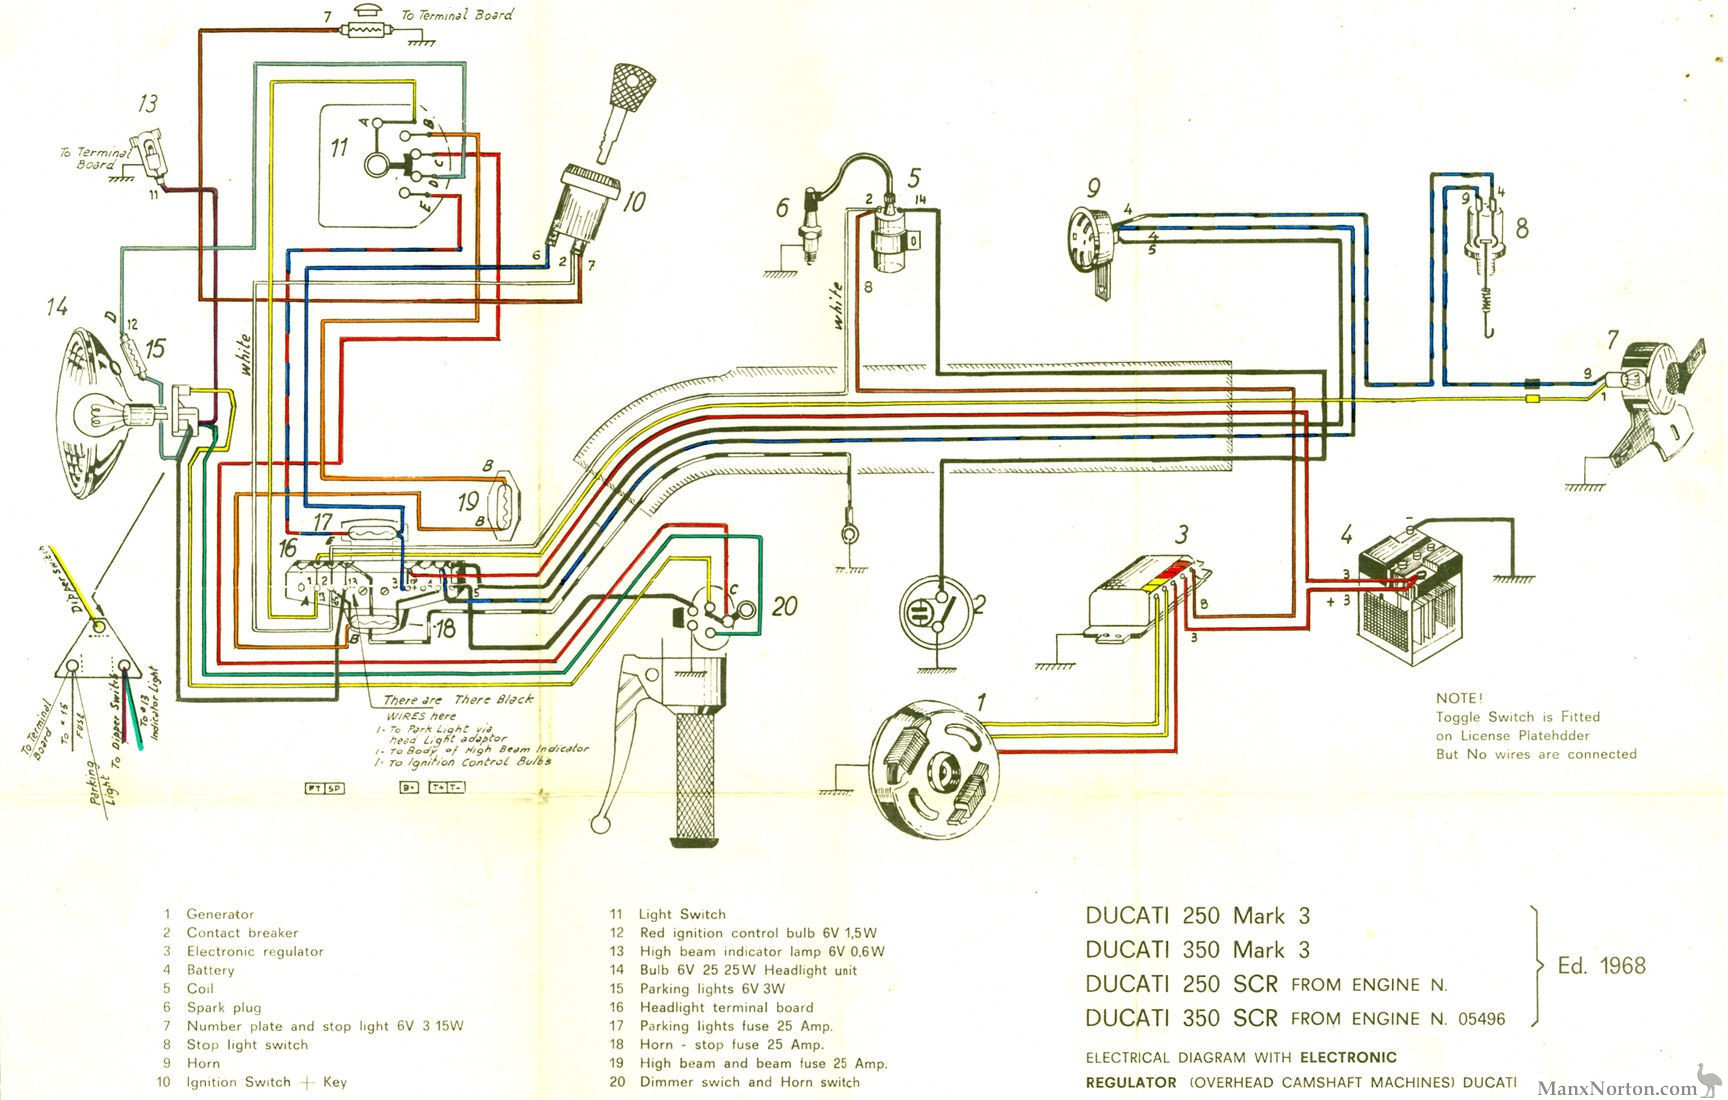 [WLLP_2054]   F752 Ducati S2r 800 Wiring Diagram | Wiring Resources | Alpine Iva 800 Car Stereo Wiring Diagram |  | Wiring Resources